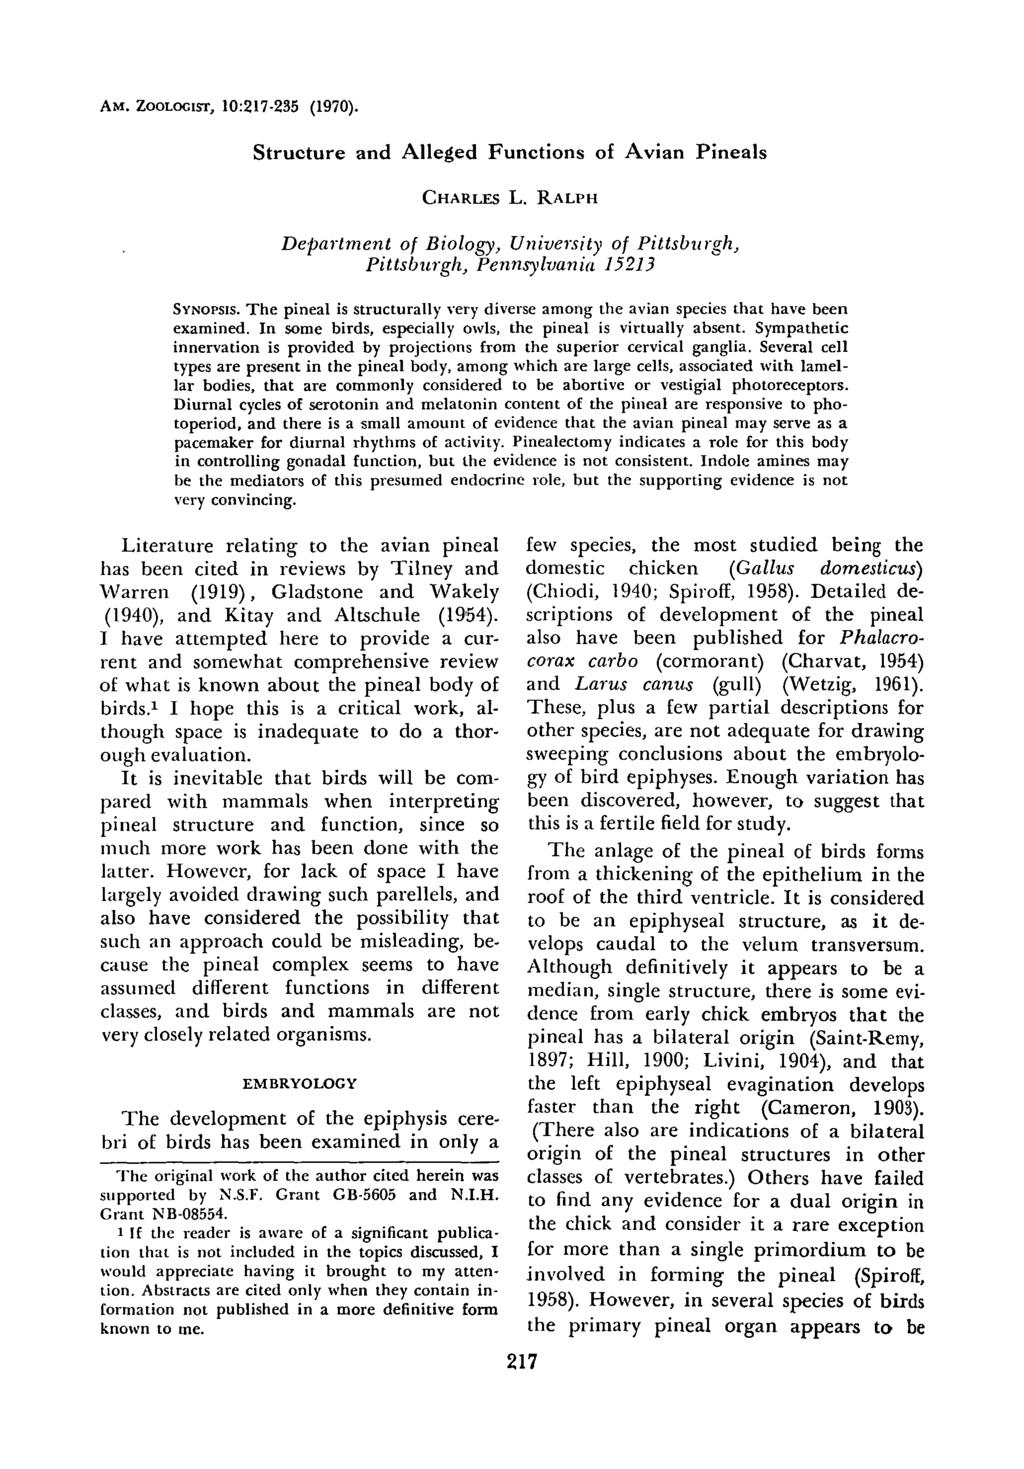 AM. ZOOLOCIST, 10:217-235 (1970). Structure and Alleged Functions of Avian Pineals CHARLES L. RALPH Department of Biology, University of Pittsburgh,, Pittsburgh, Pennsylvania 15213 SYNOPSIS.